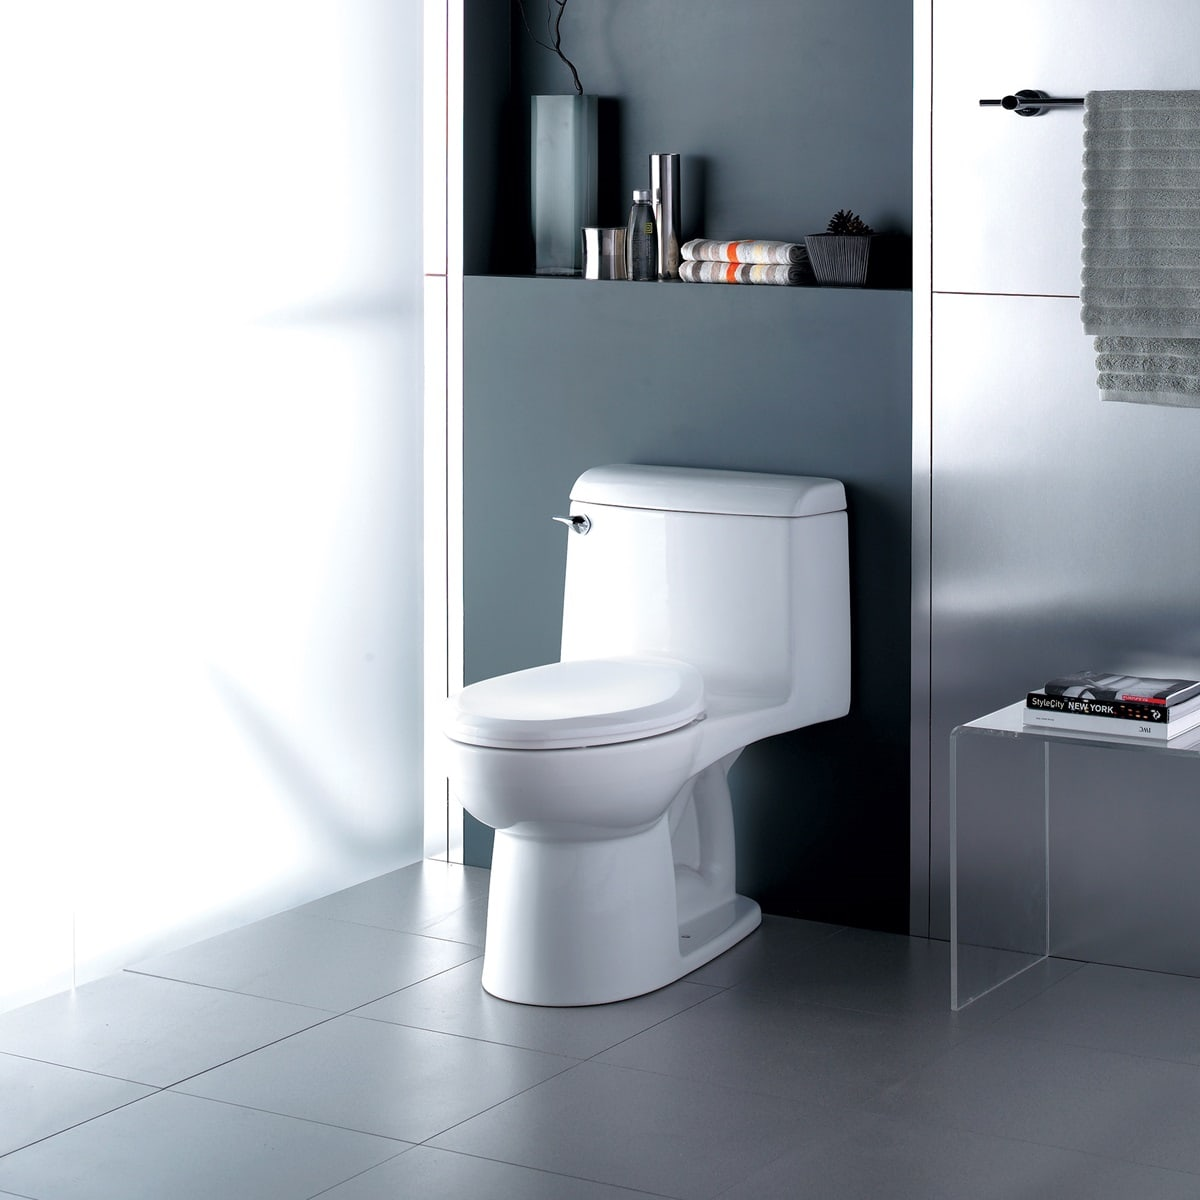 American Standard 2004.314.020 White Champion 4 Elongated One-Piece ...